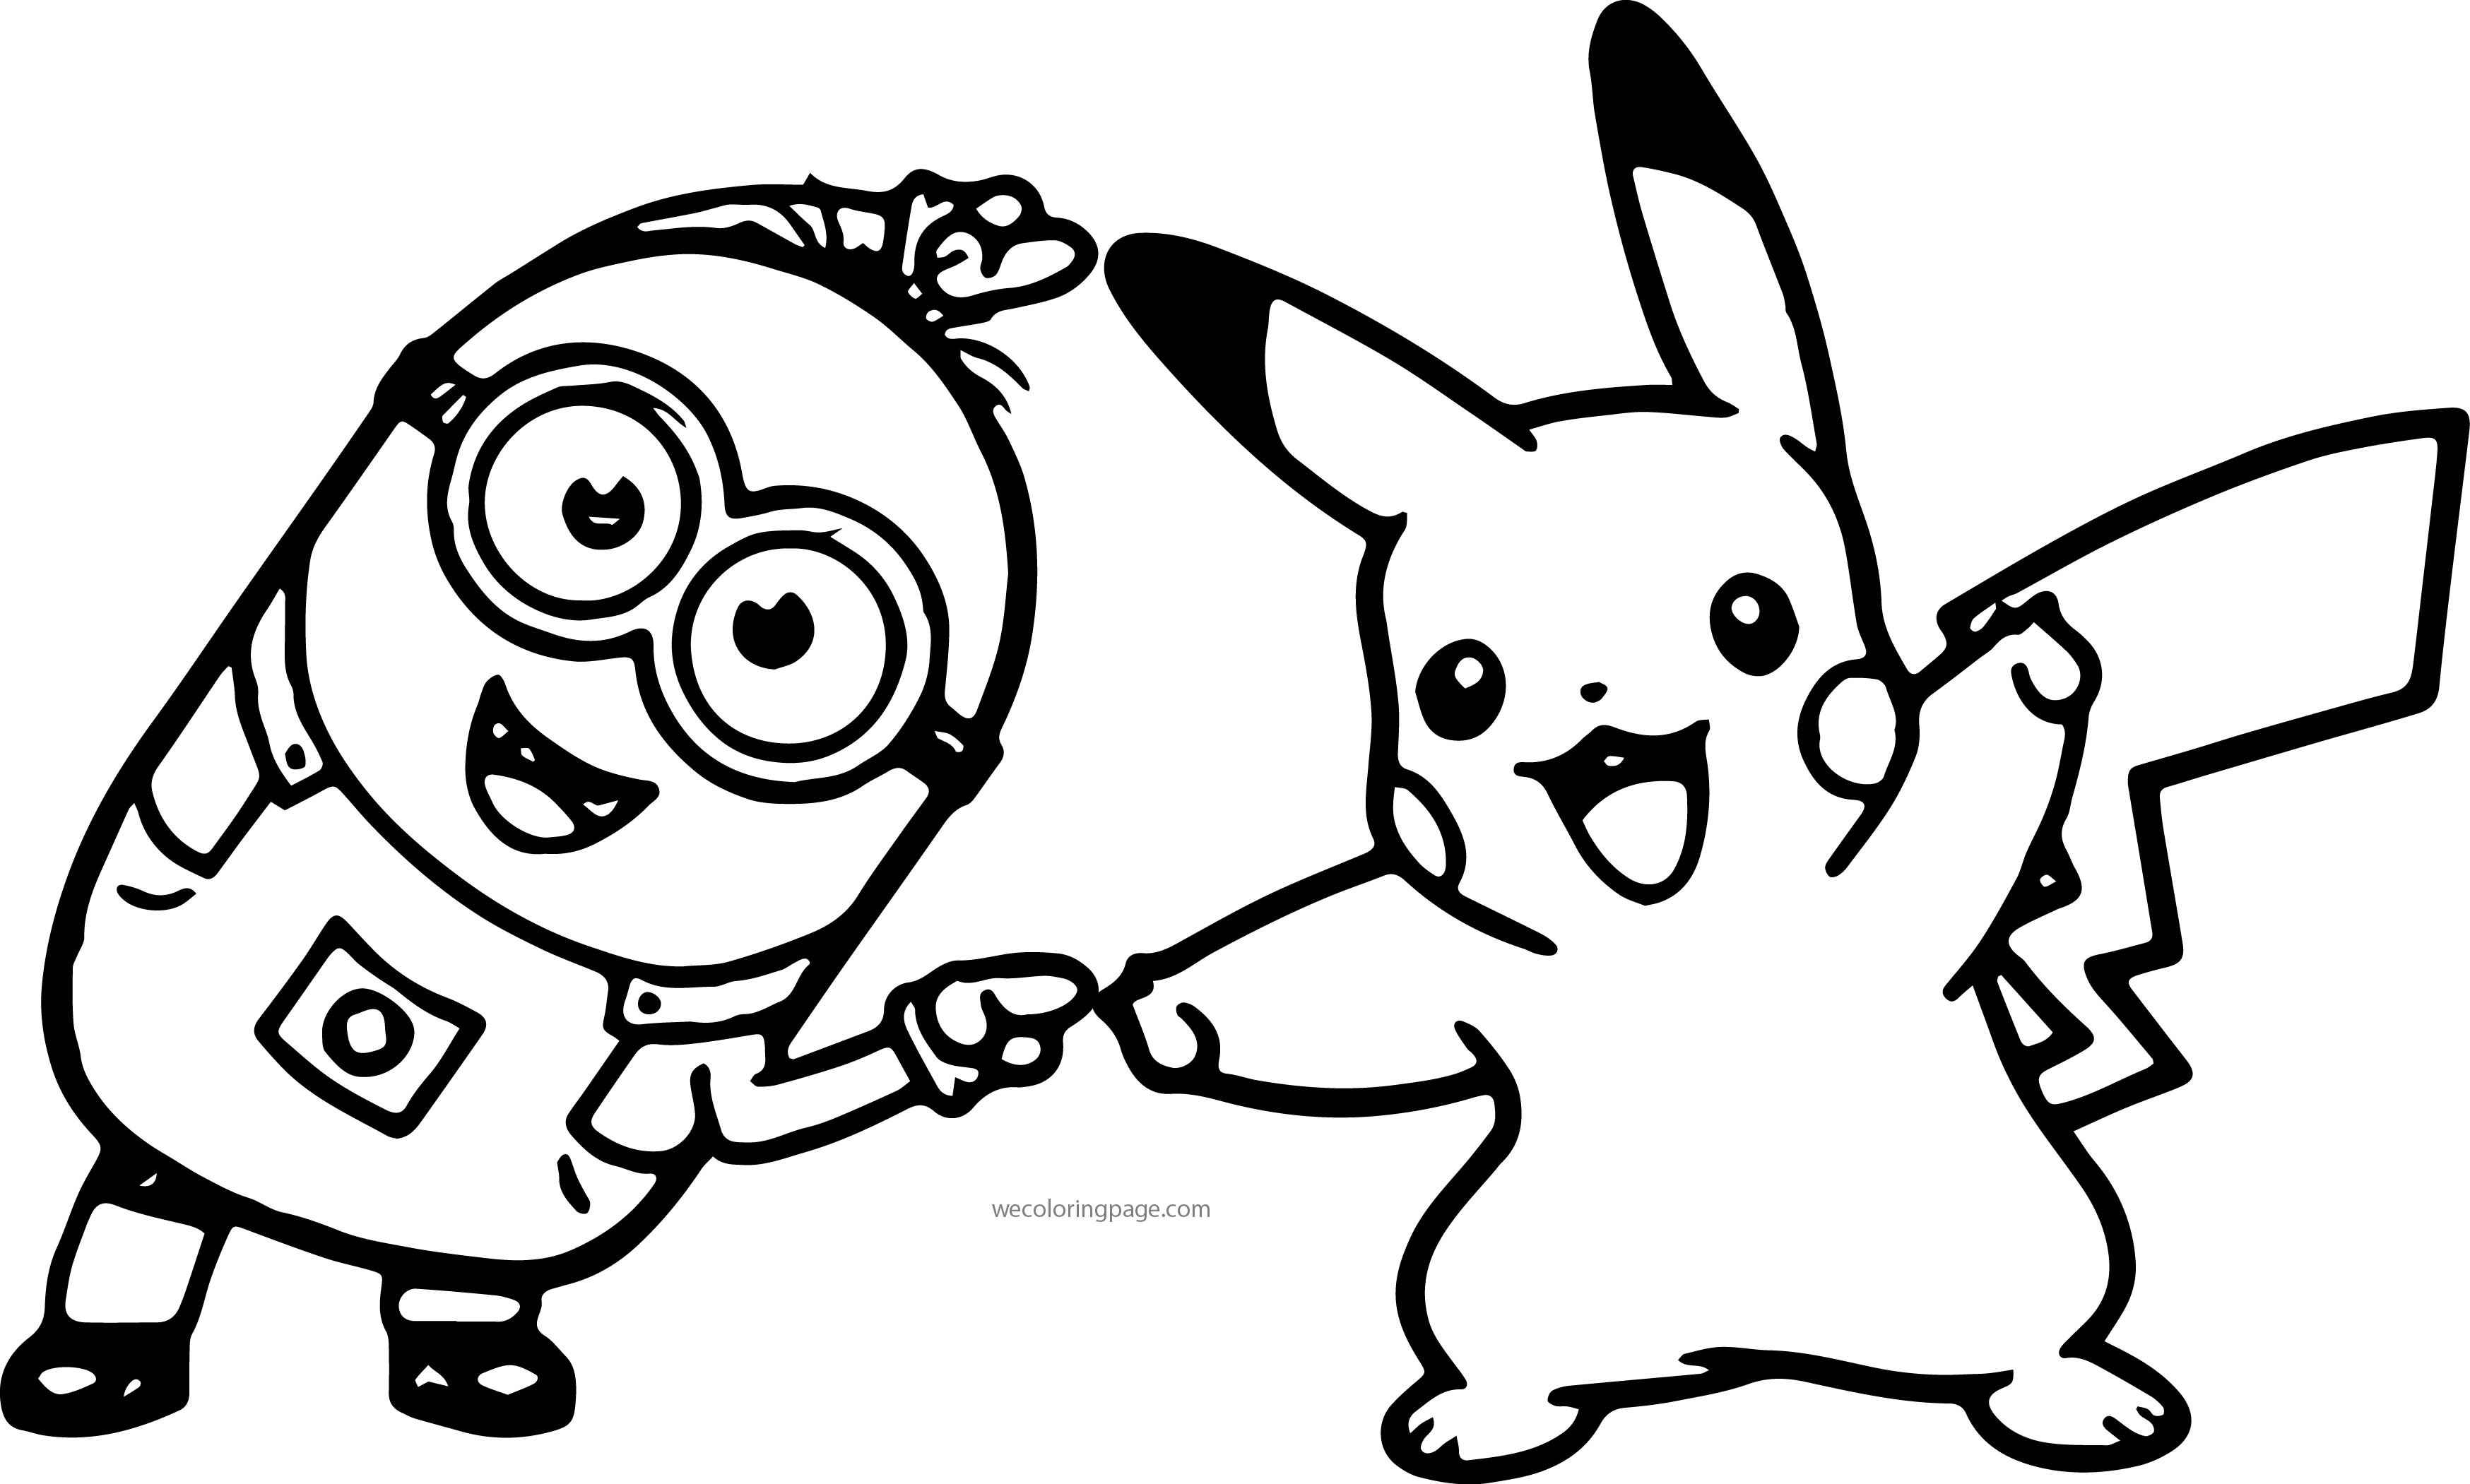 3496x2101 Incredible Baby Minion Coloring Page Wecoloringpage Image